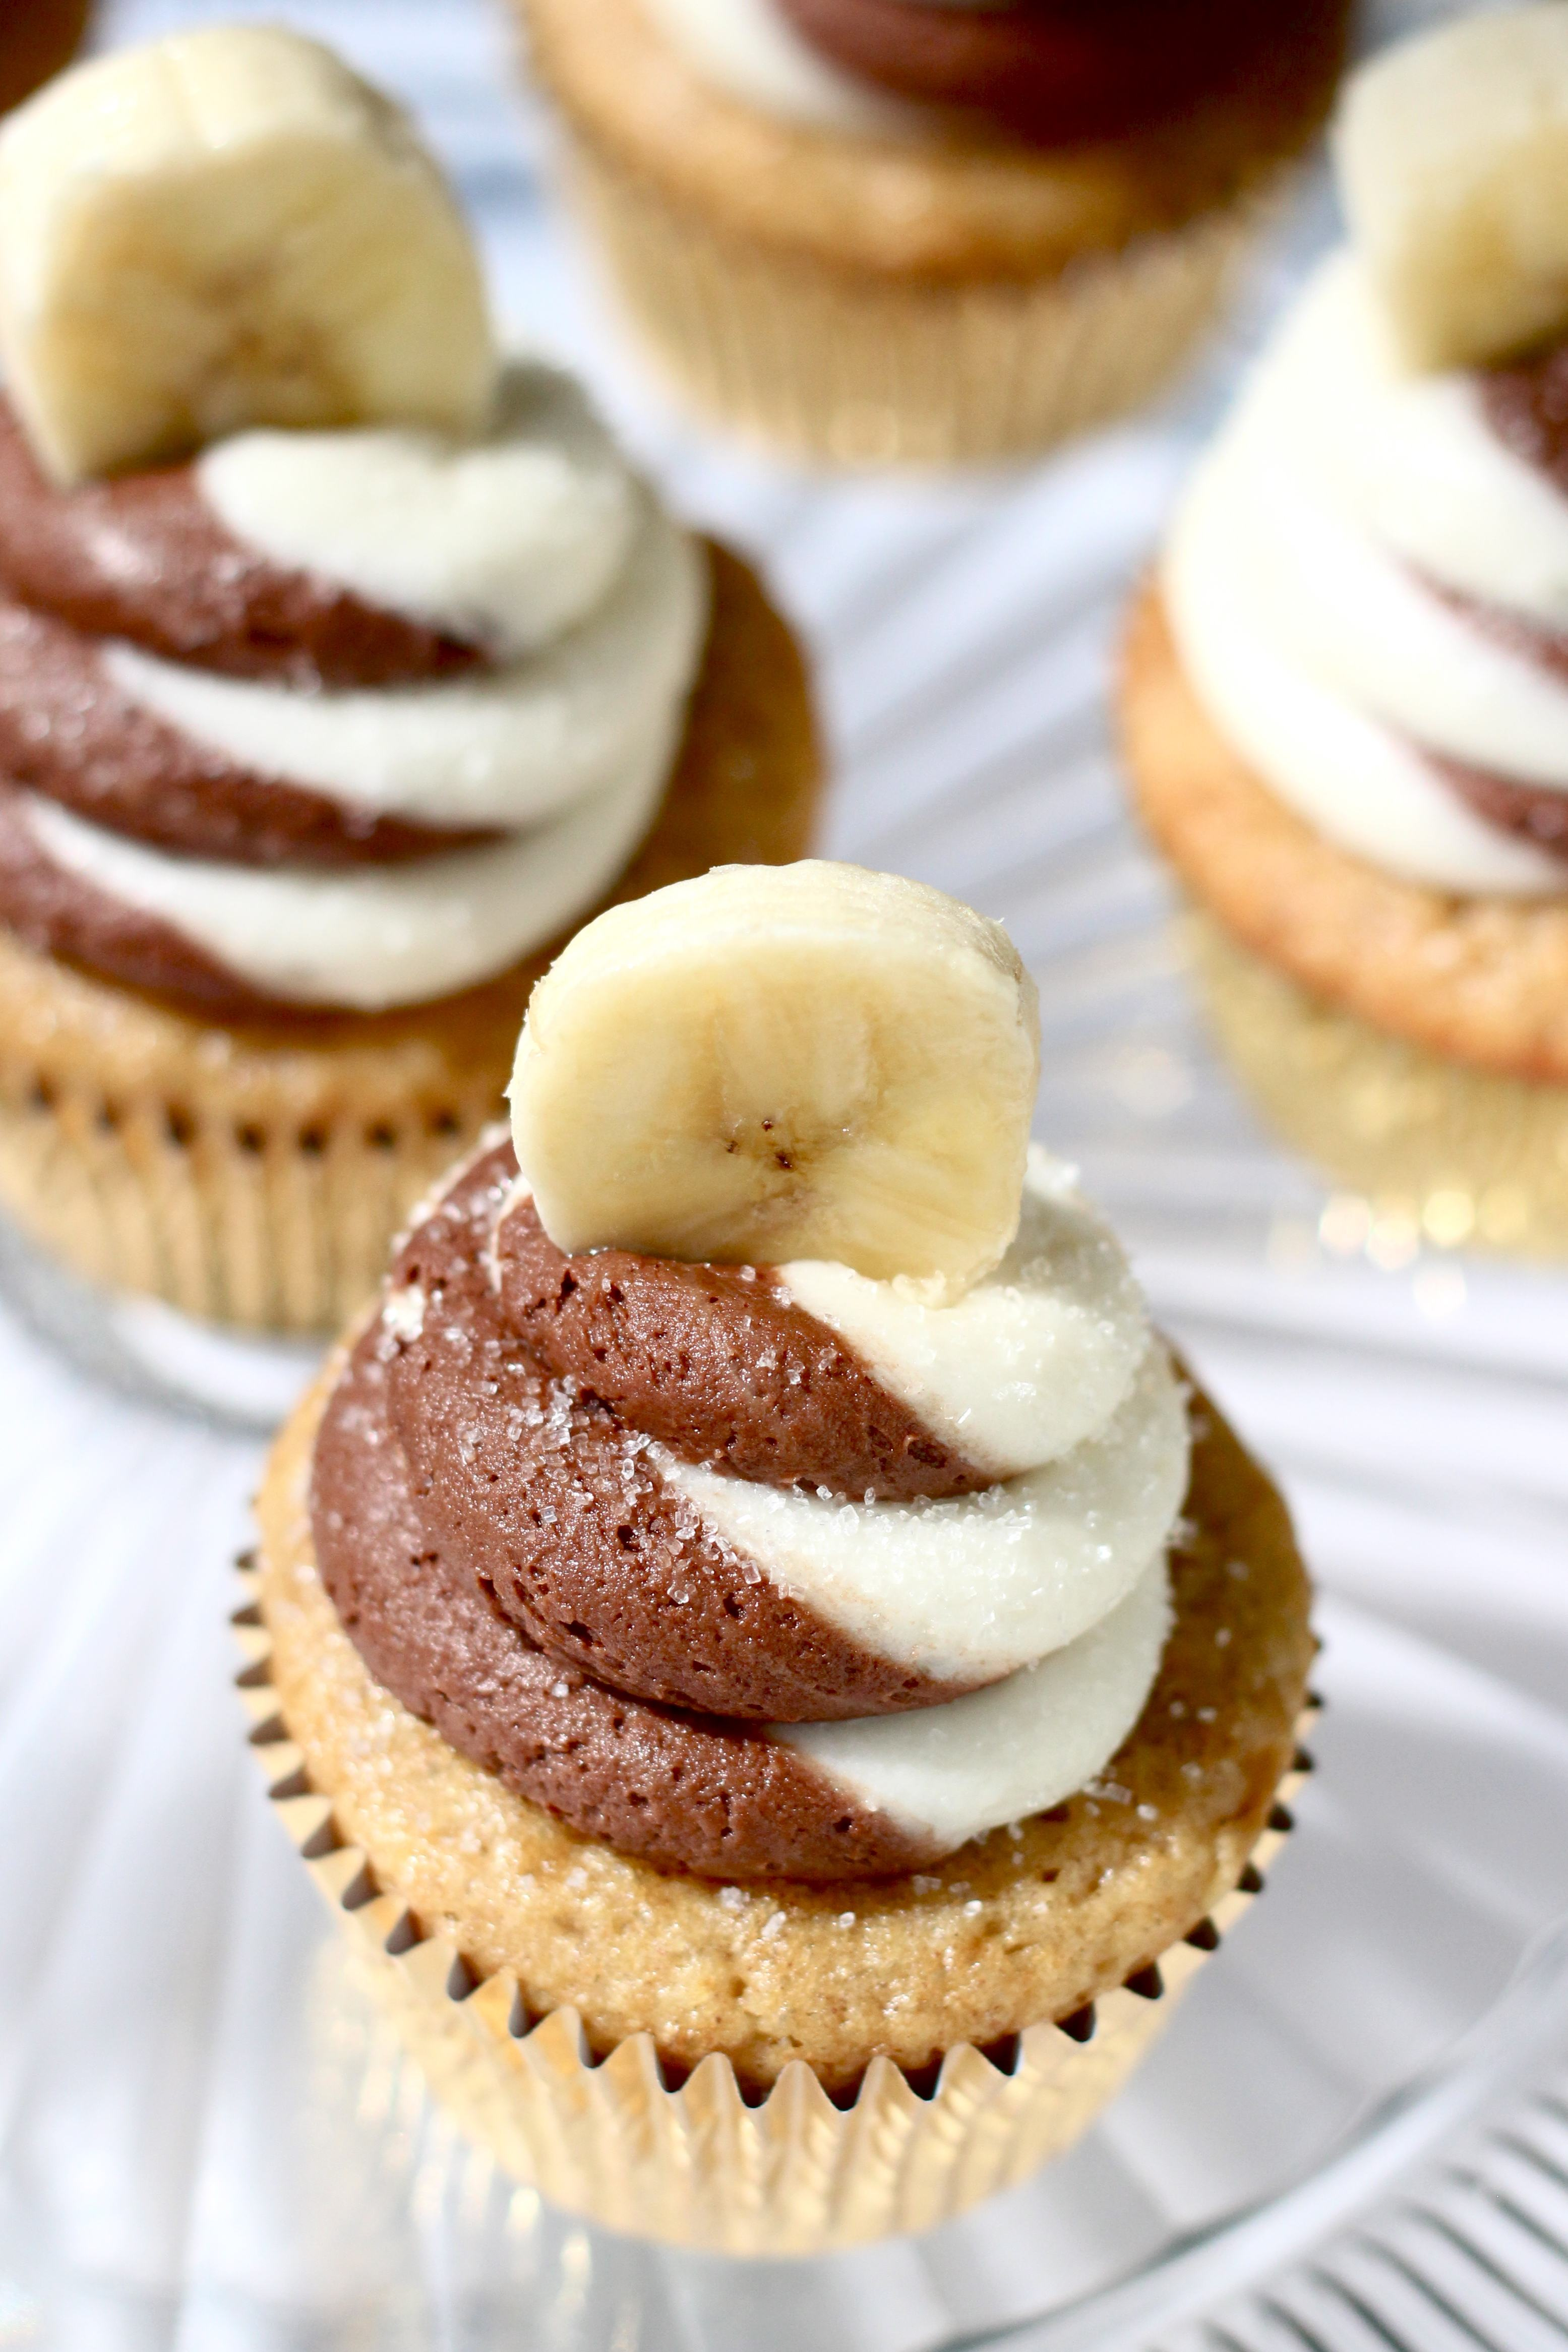 Banana Chocolate Swirl Cupcakes - Your Cup of Cake